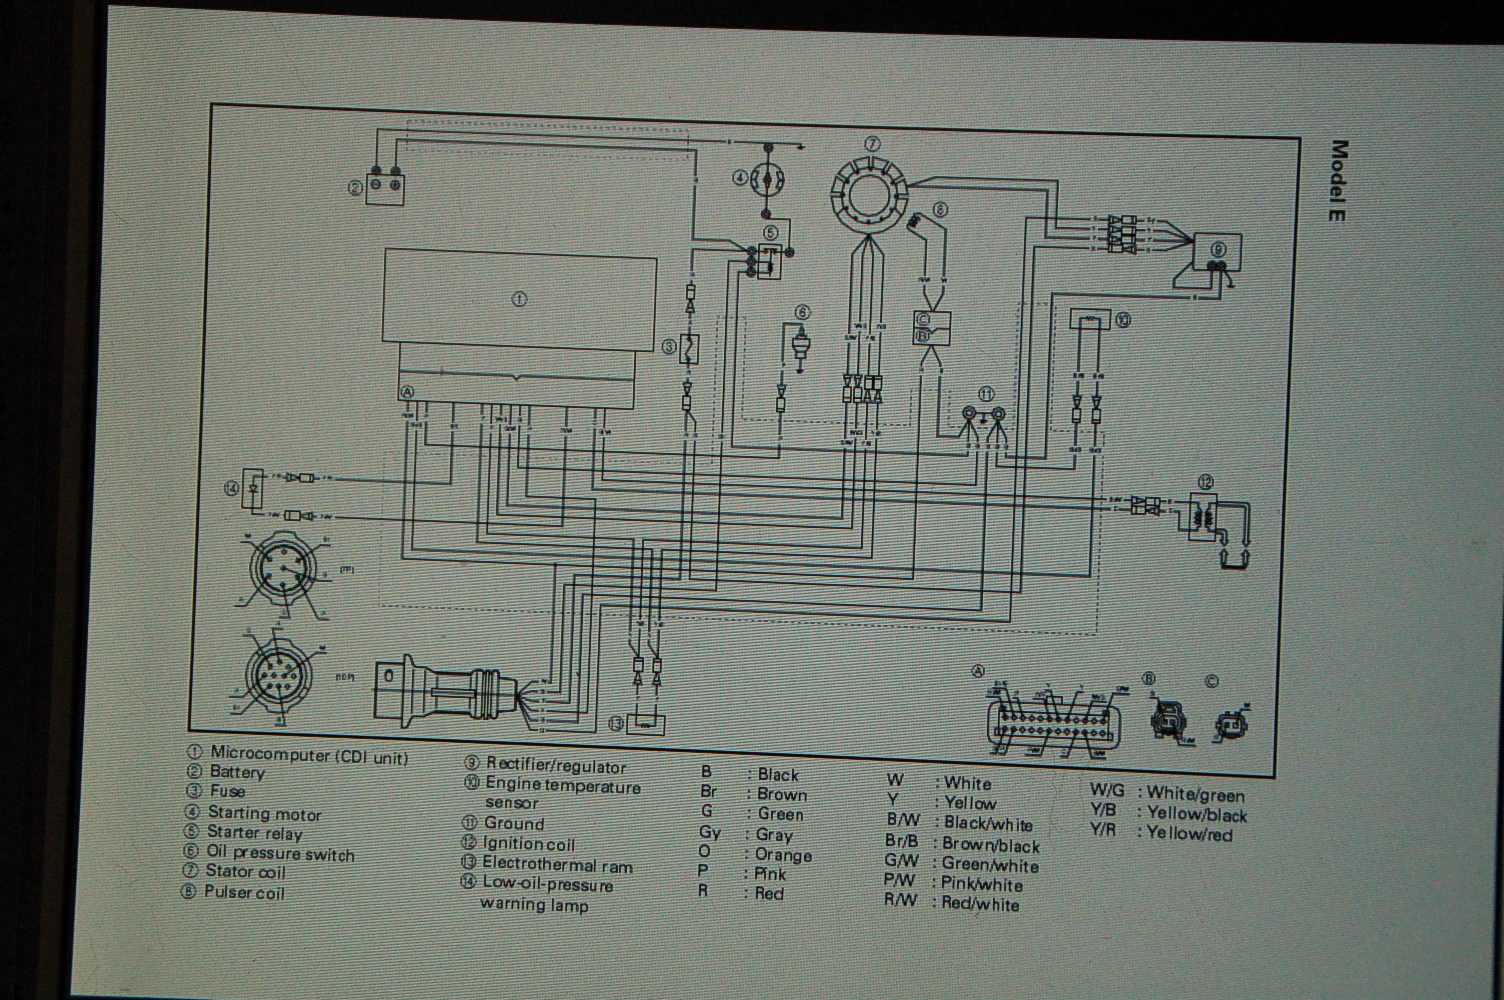 Yamaha It 465 Wiring Diagram Wiring Diagram